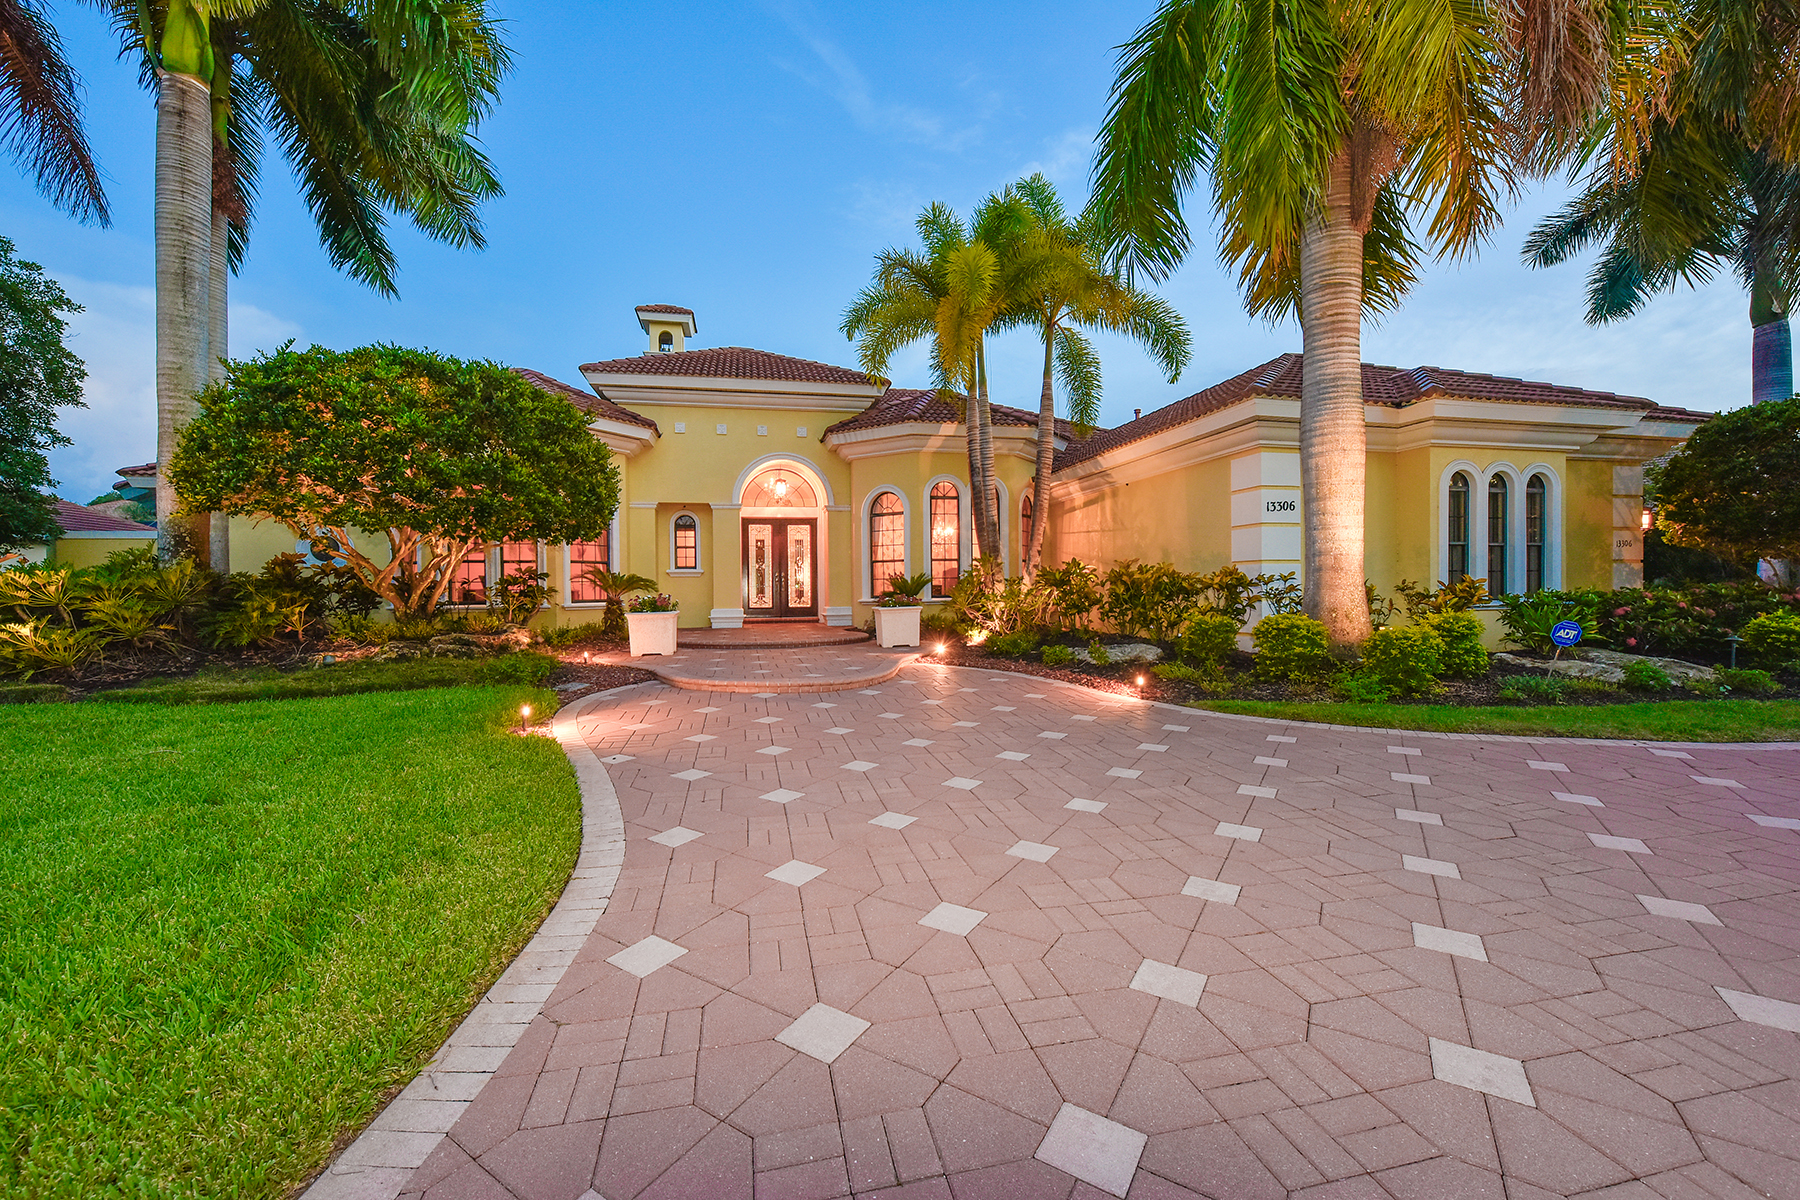 Maison unifamiliale pour l Vente à LAKEWOOD RANCH COUNTRY CLUB 13306 Palmers Creek Terr Lakewood Ranch, Florida, 34202 États-Unis